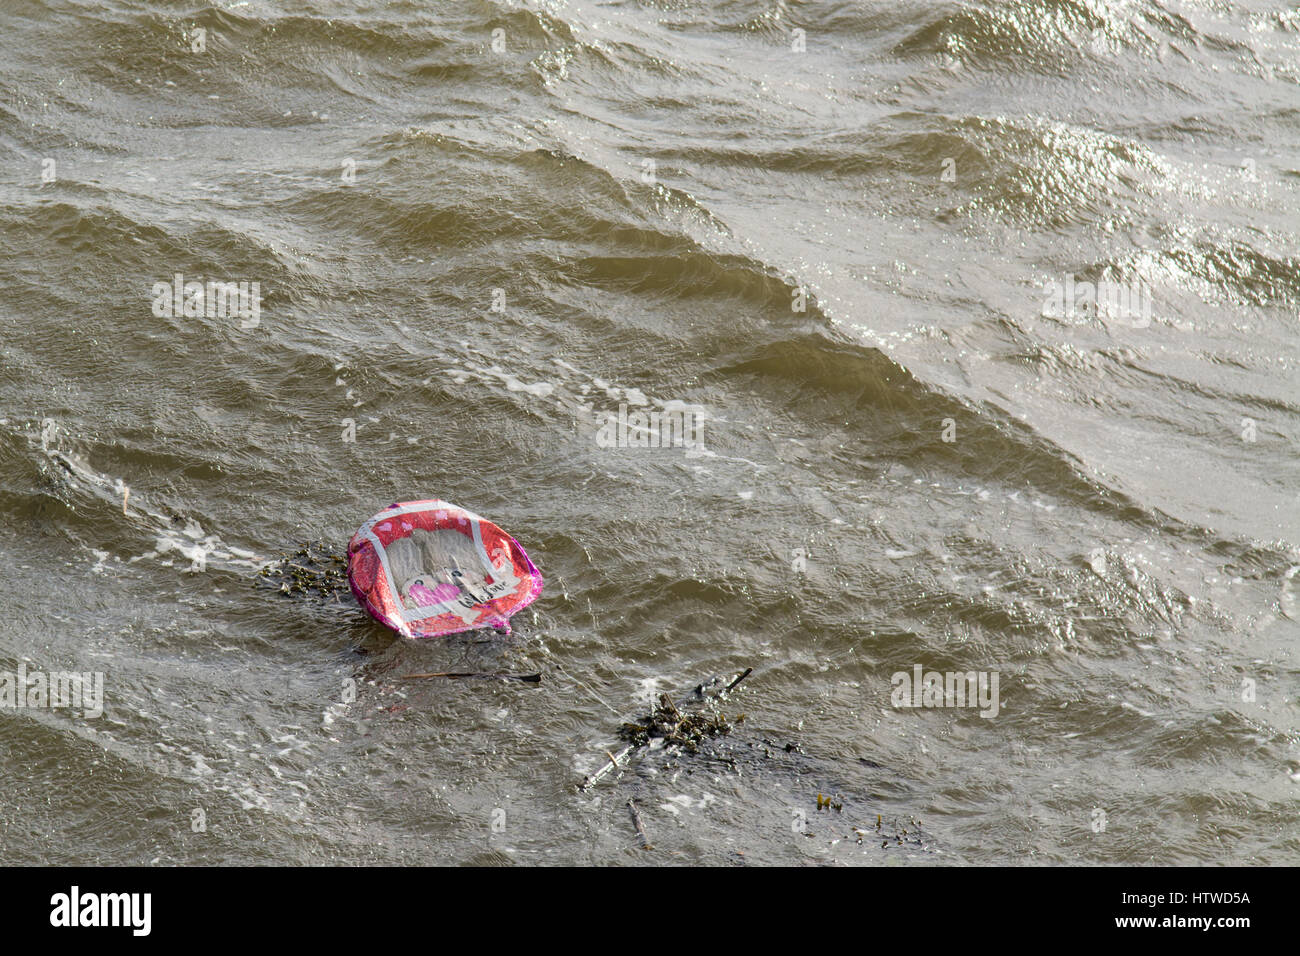 balloon litter - foil balloon floating in the sea entangled in seaweed - valentines balloon ironically says 'with - Stock Image